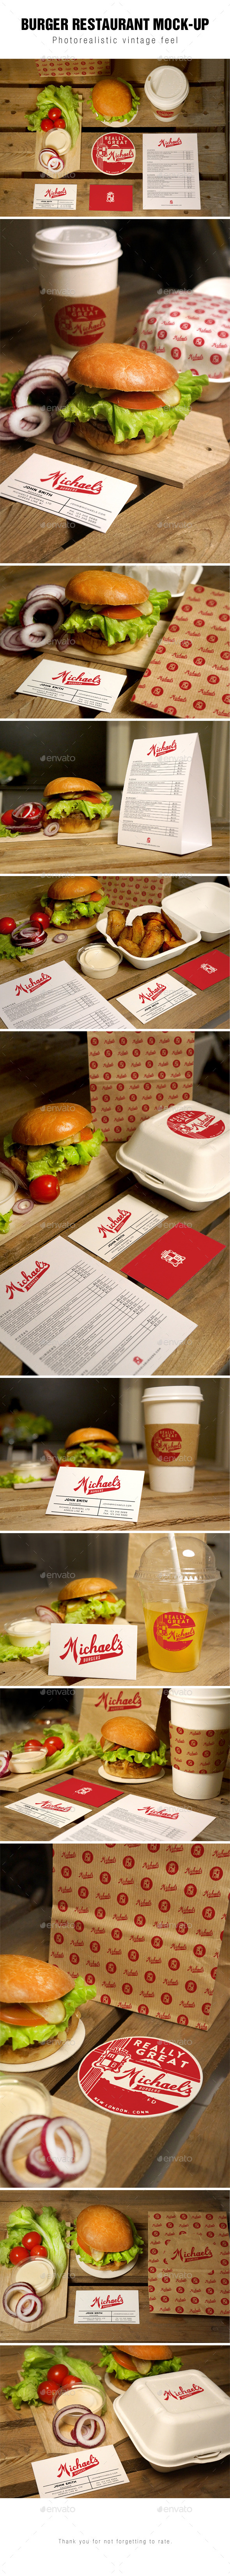 Burger Restaurant Mockup - Product Mock-Ups Graphics